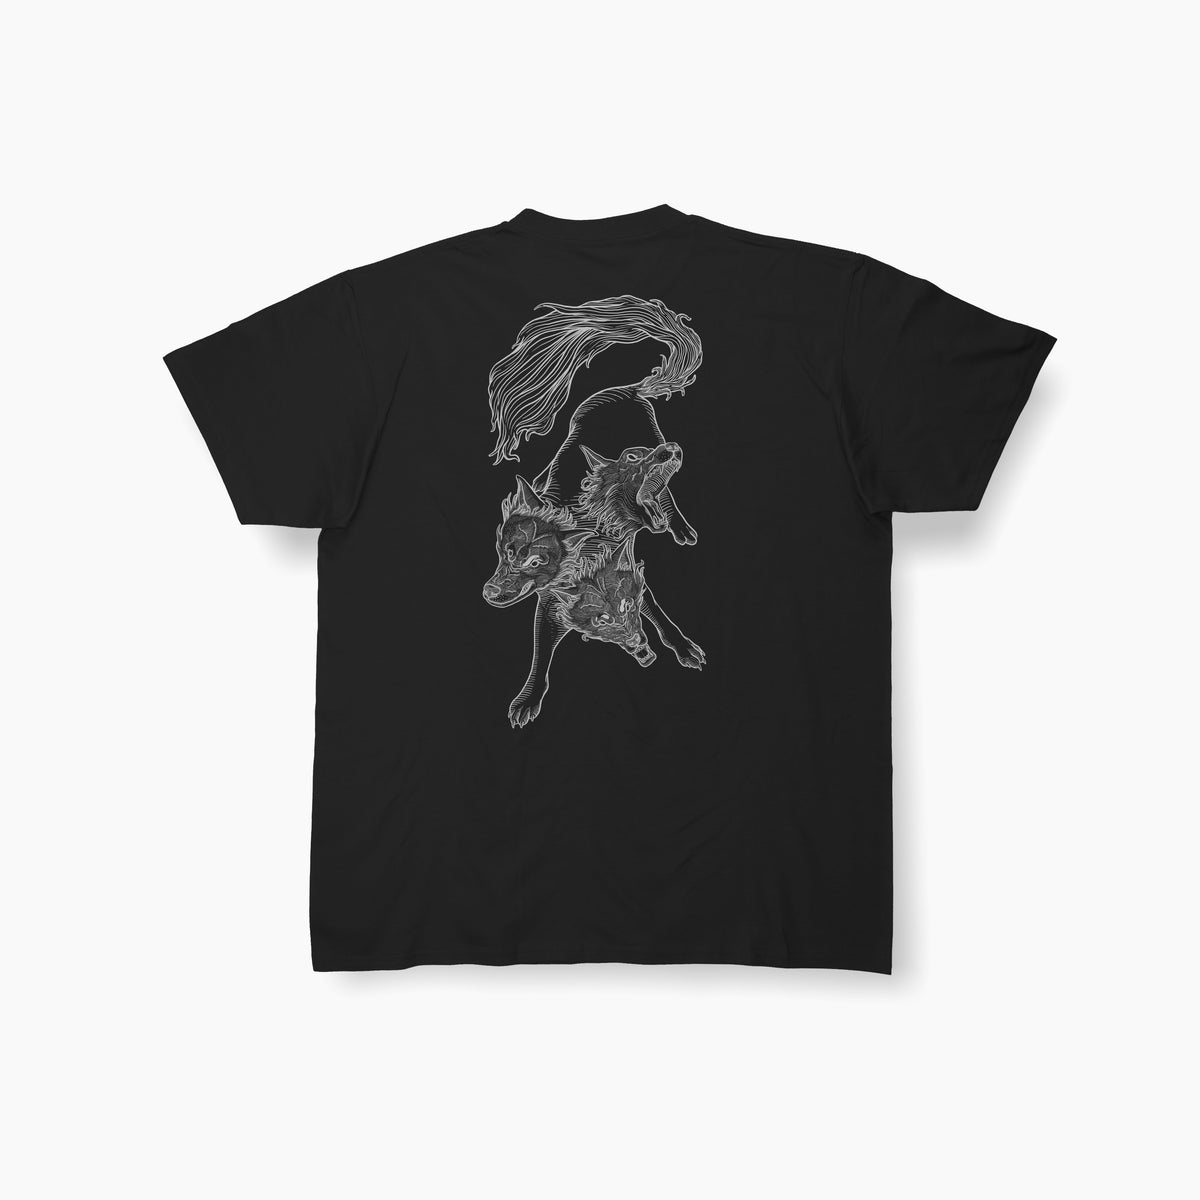 Black Cerberus Tees